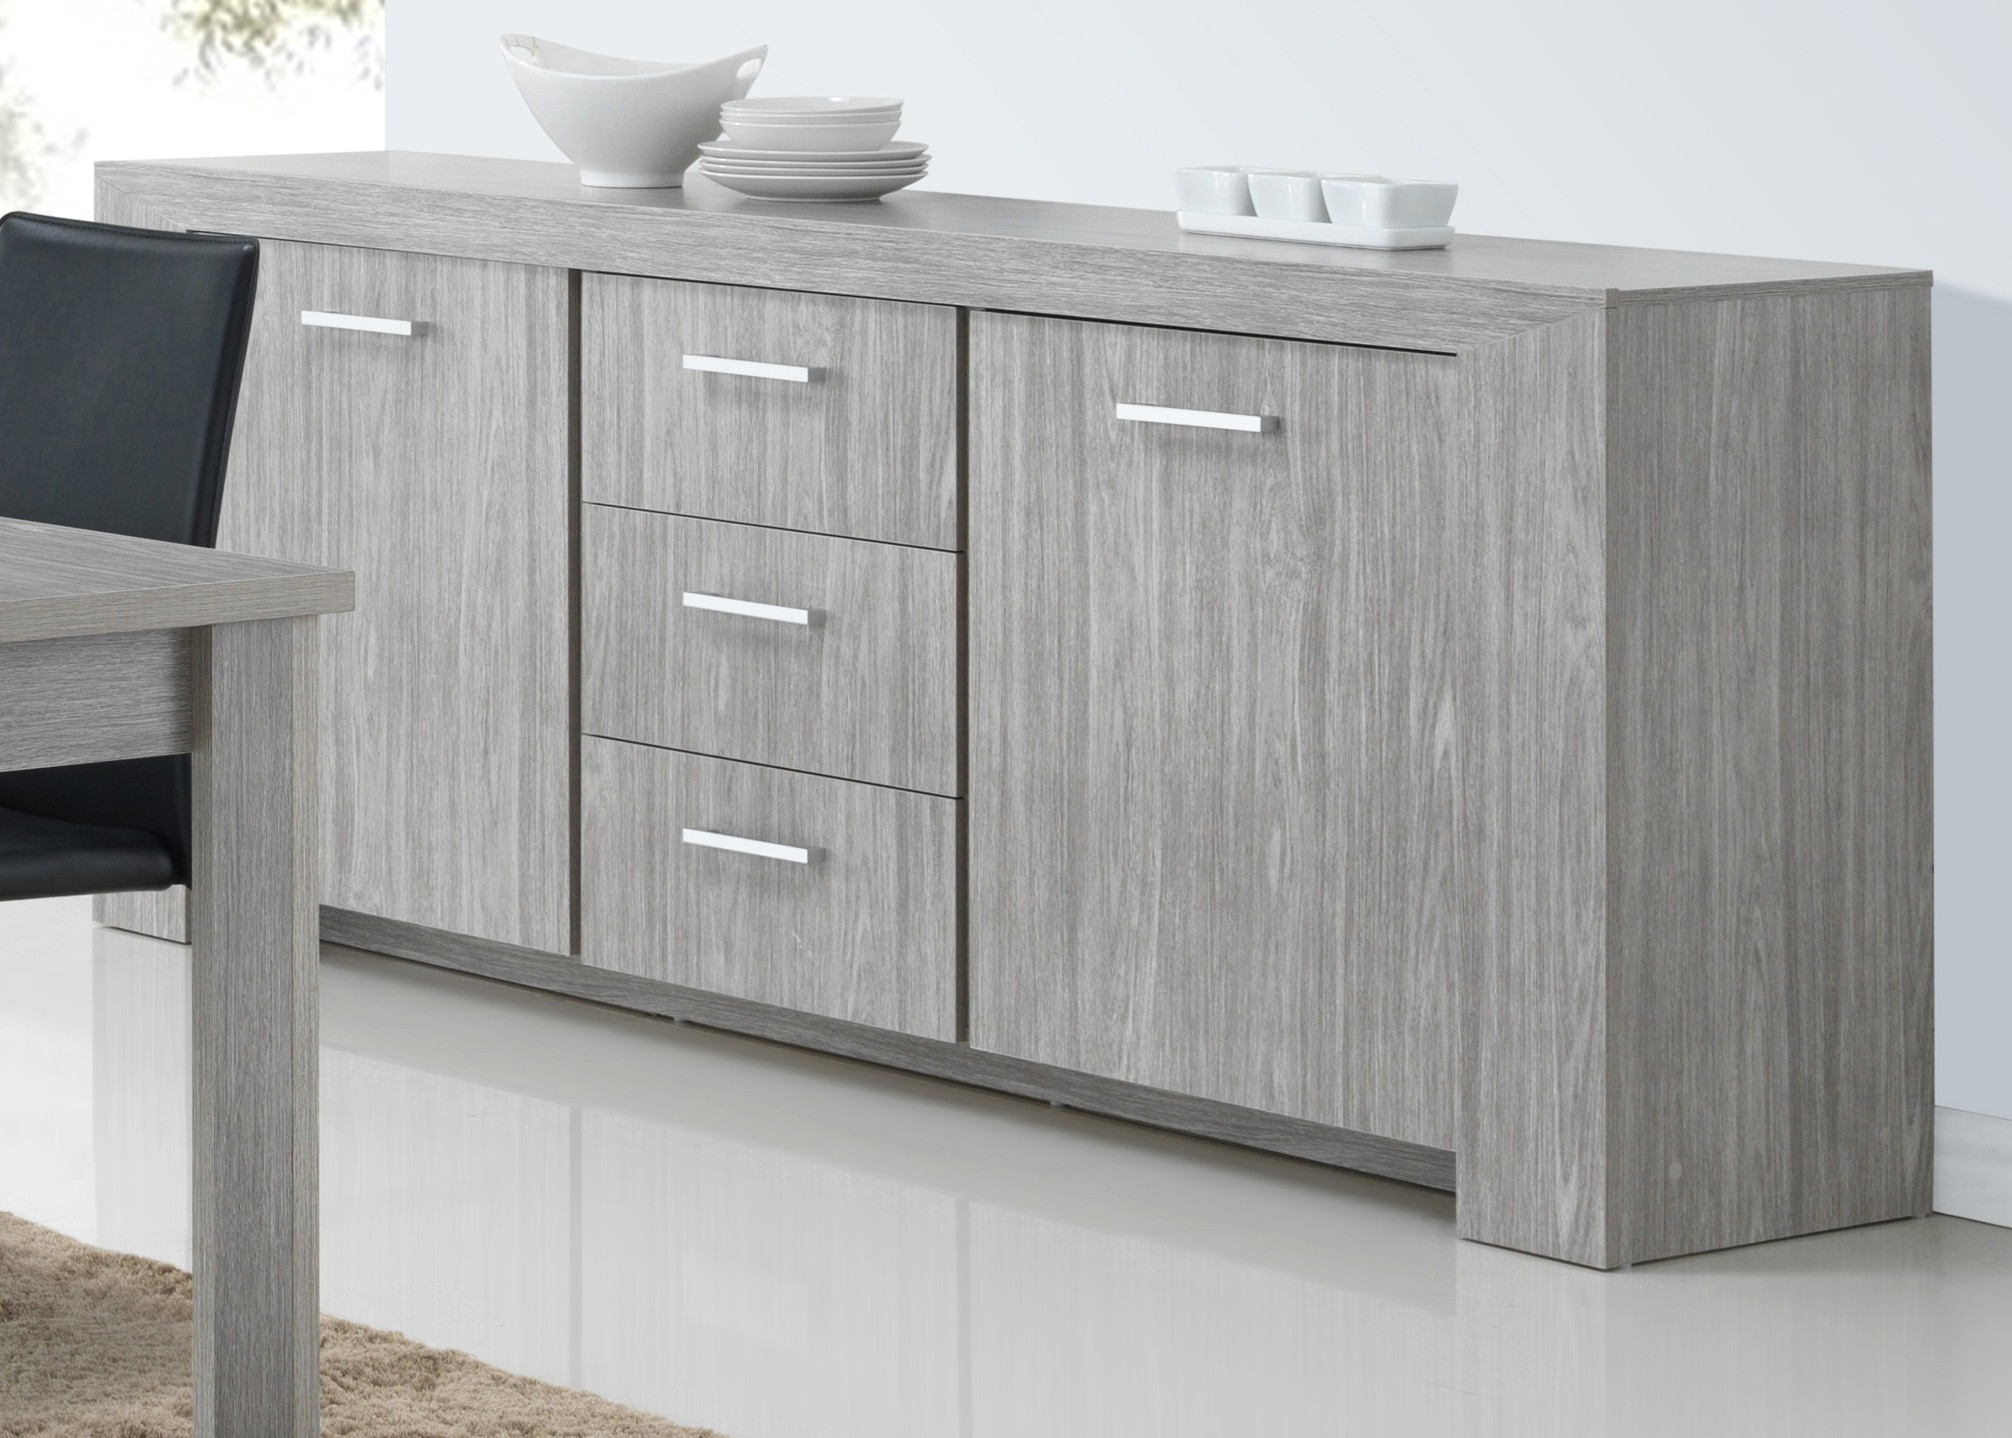 Bahut Bas Design Buffet-bahut Contemporain 220 Cm Lord